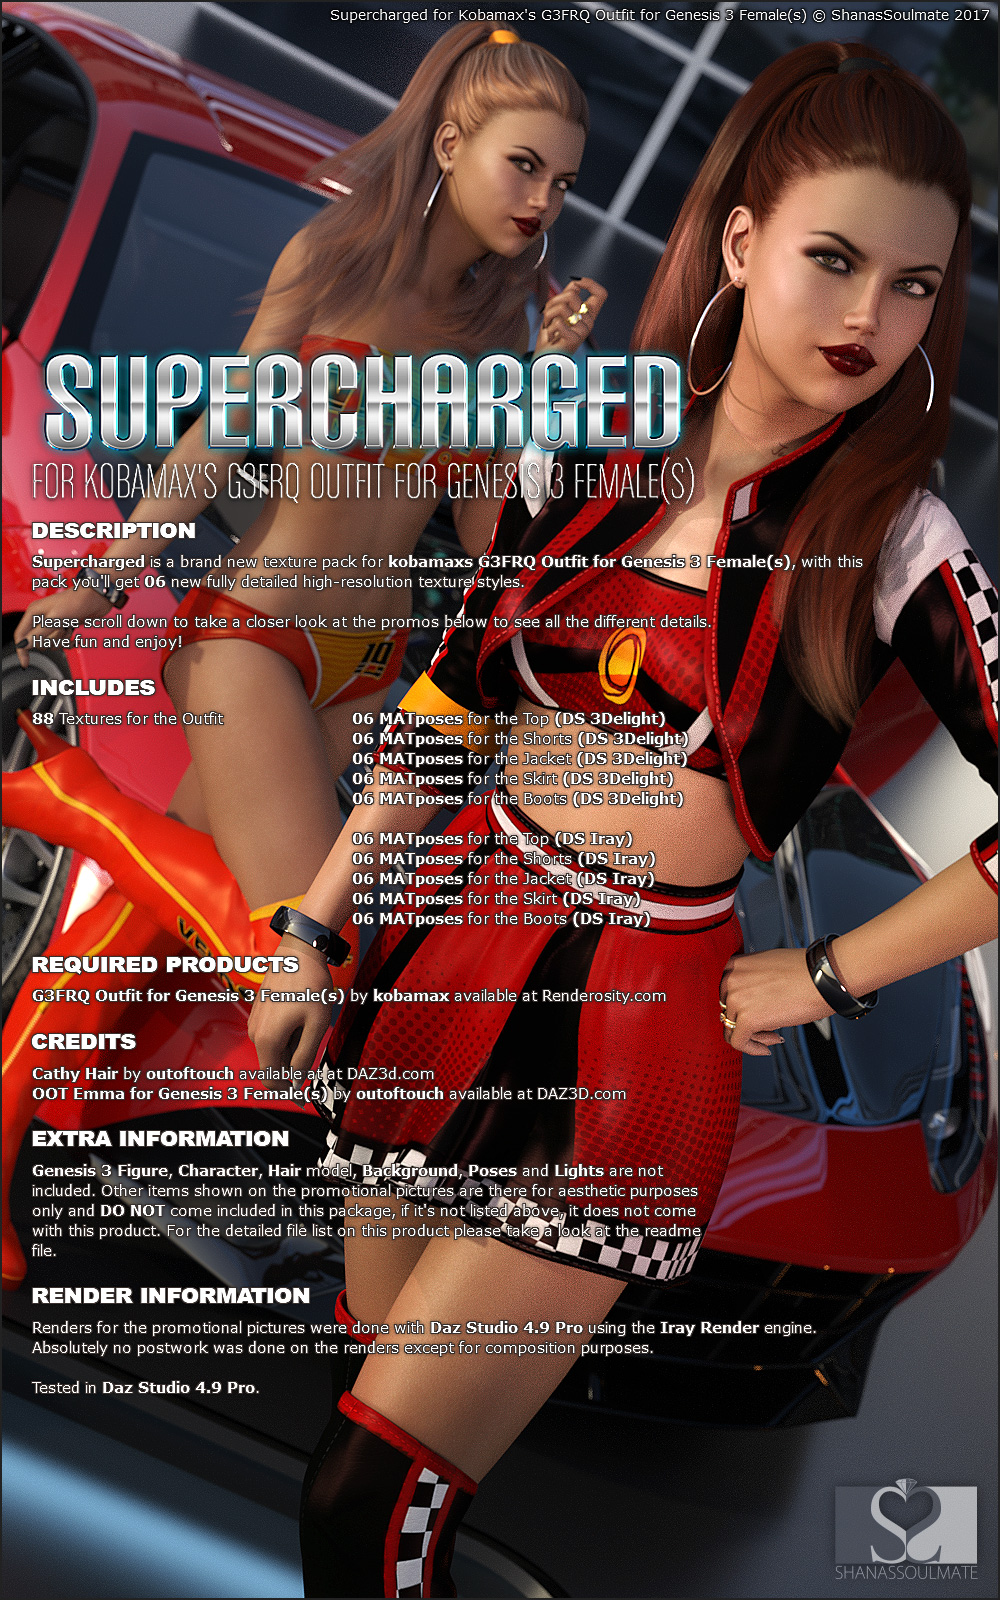 Supercharged for G3FRQ Outfit